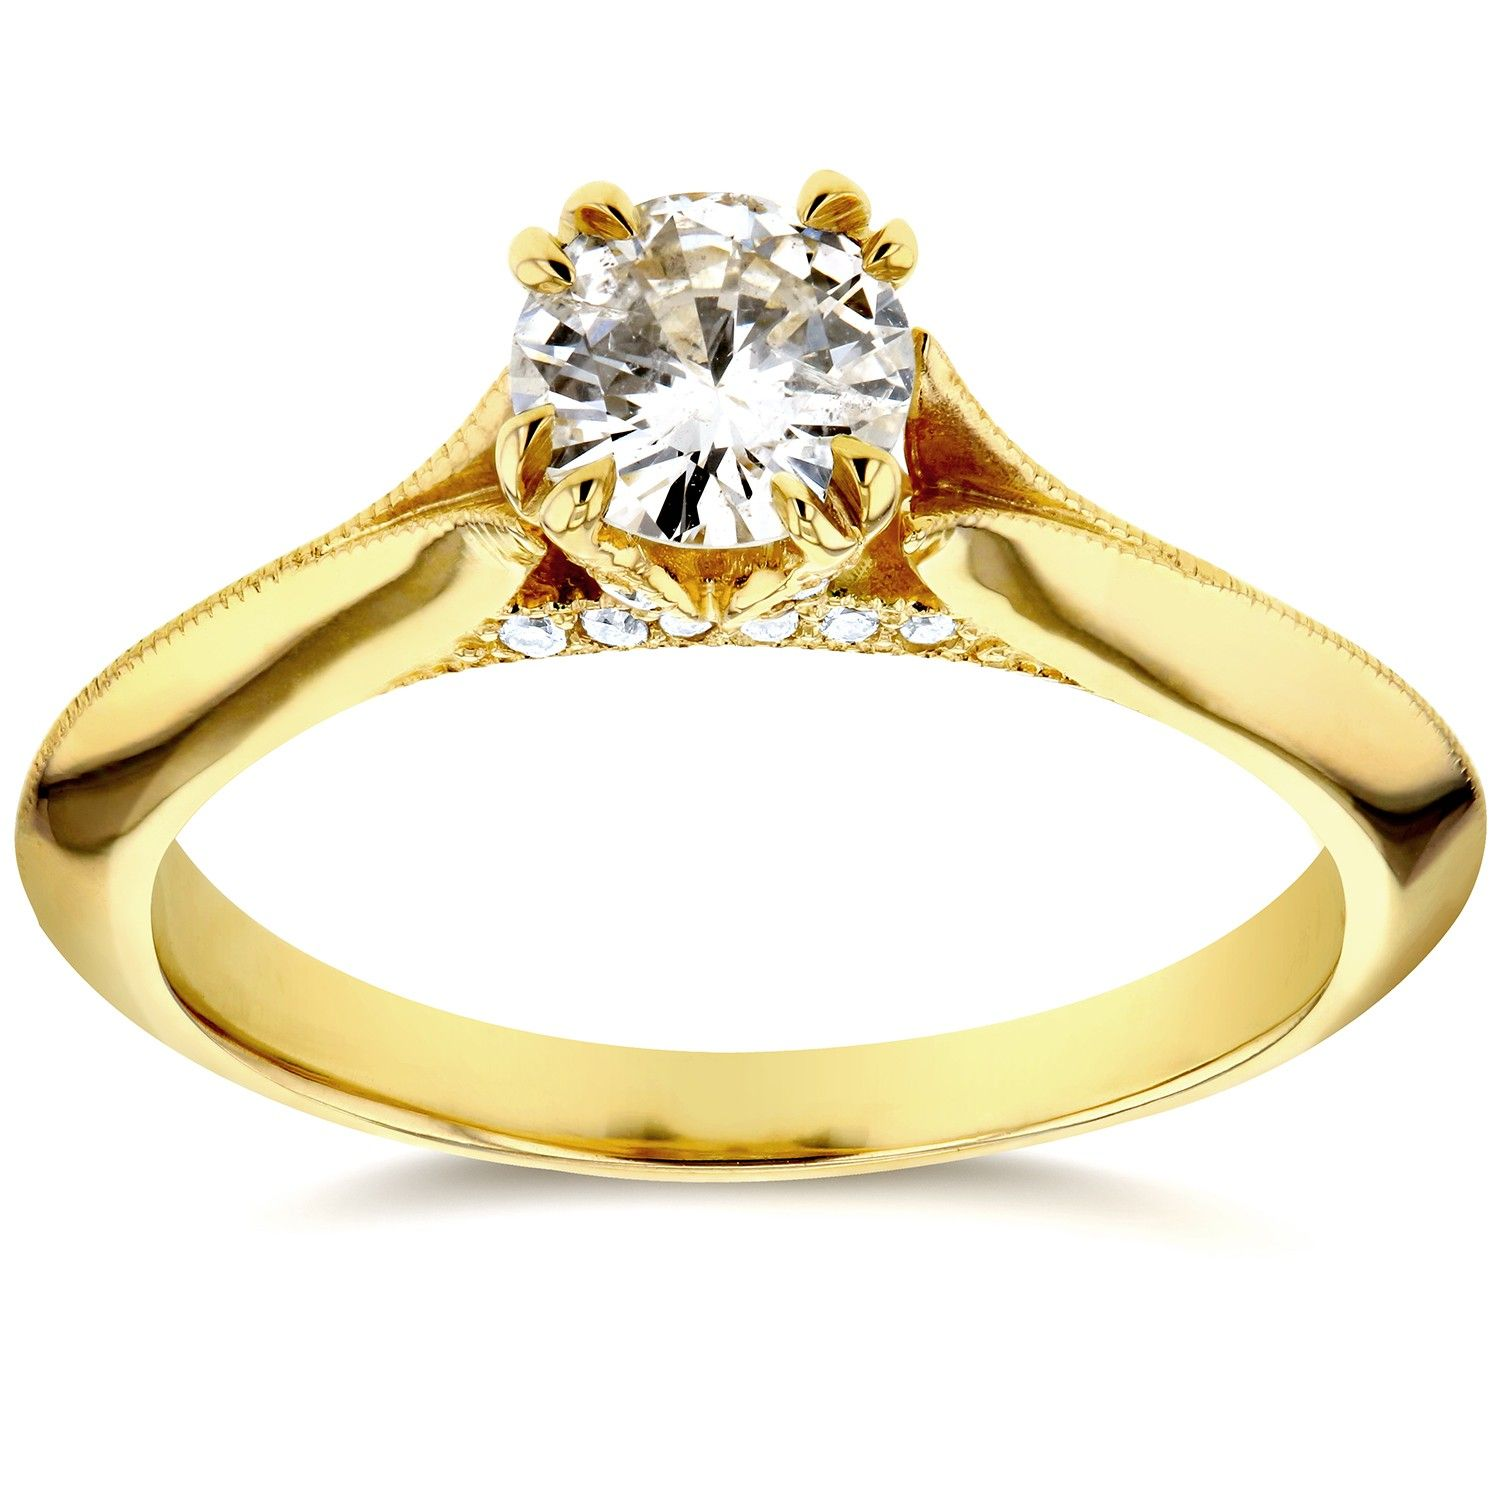 choose our extensive selection of big diamond wedding rings at